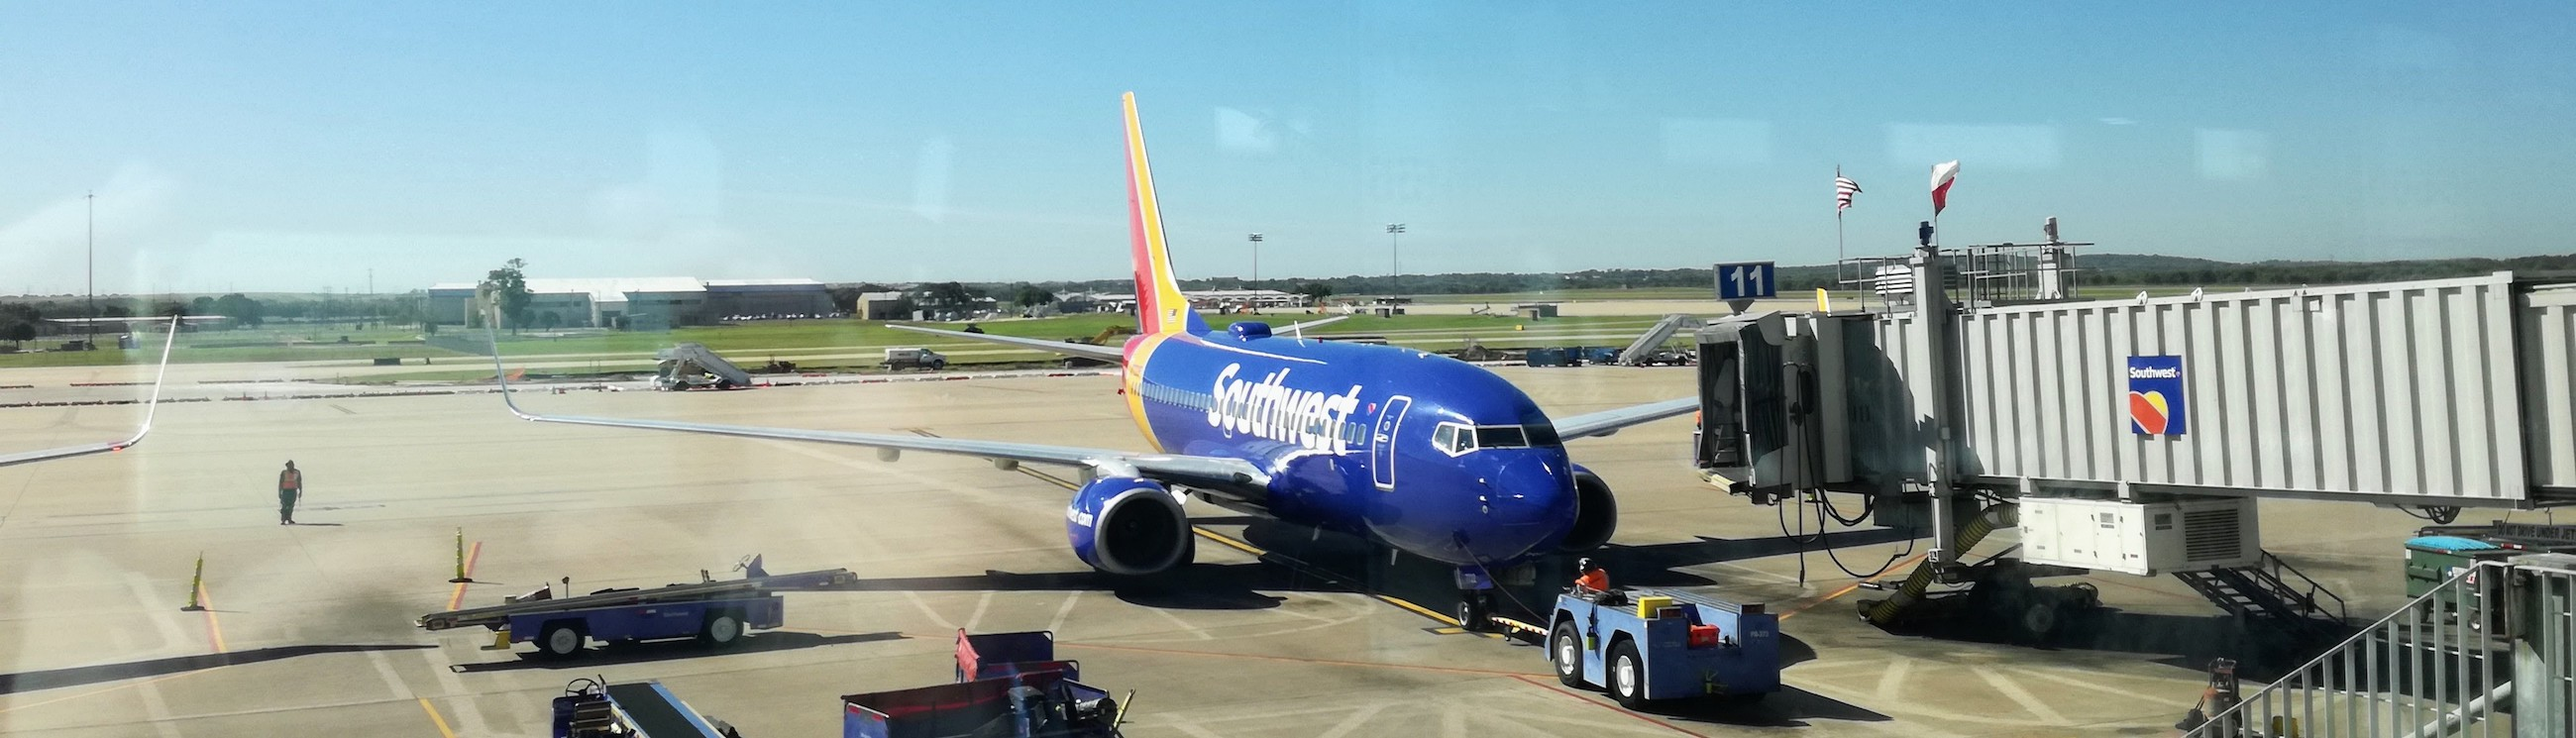 Find prices and the best time to book Southwest flights from Orlando Intl to all destinations. The cheapest Southwest deals at AirHint.